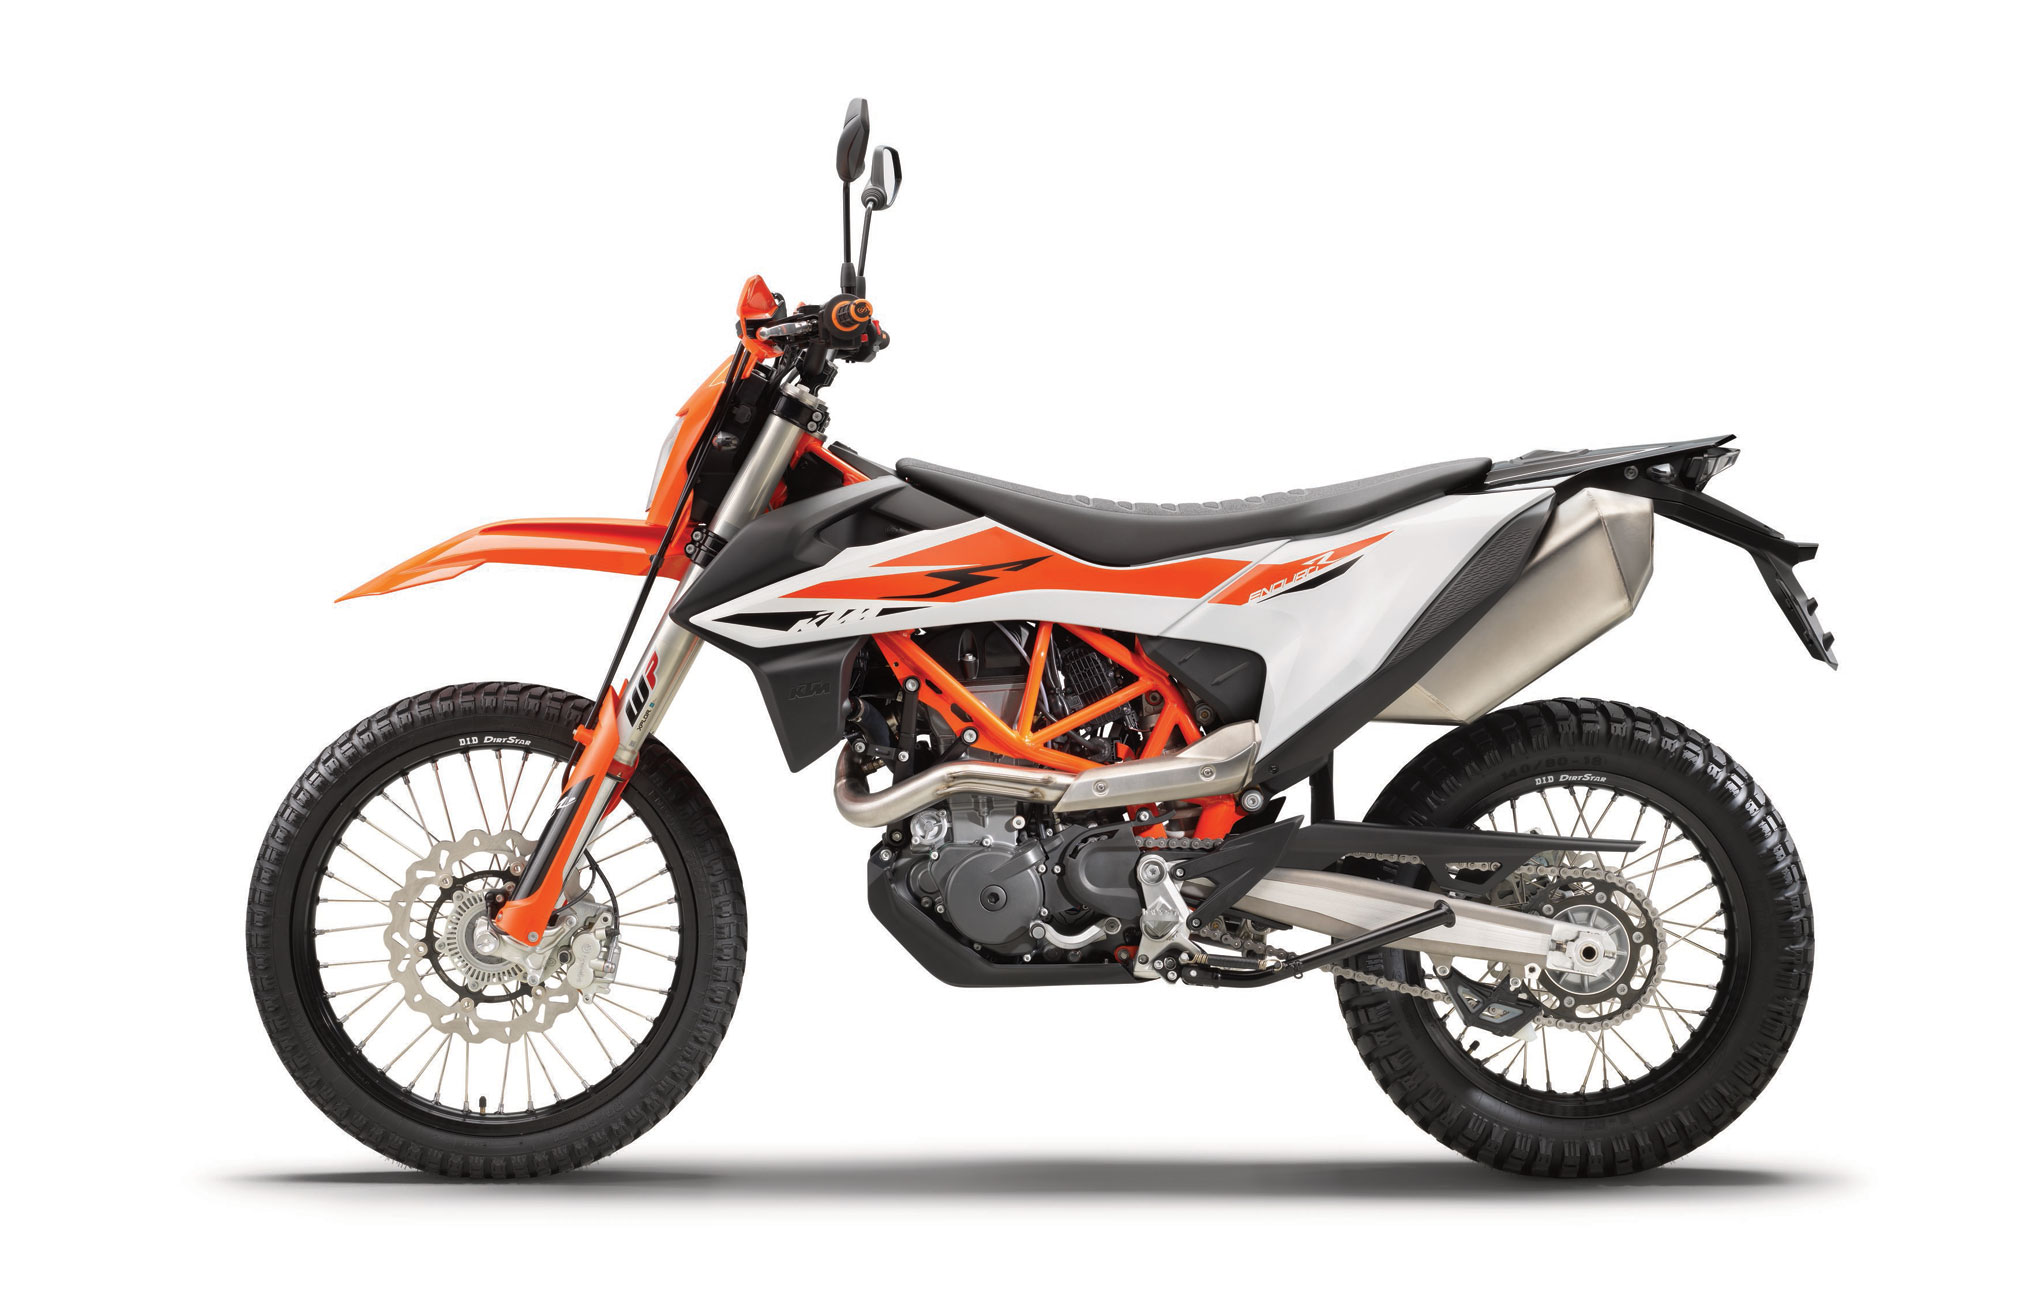 Ktm 690 Enduro R >> 2019 KTM 690 Enduro R Guide • TotalMotorcycle